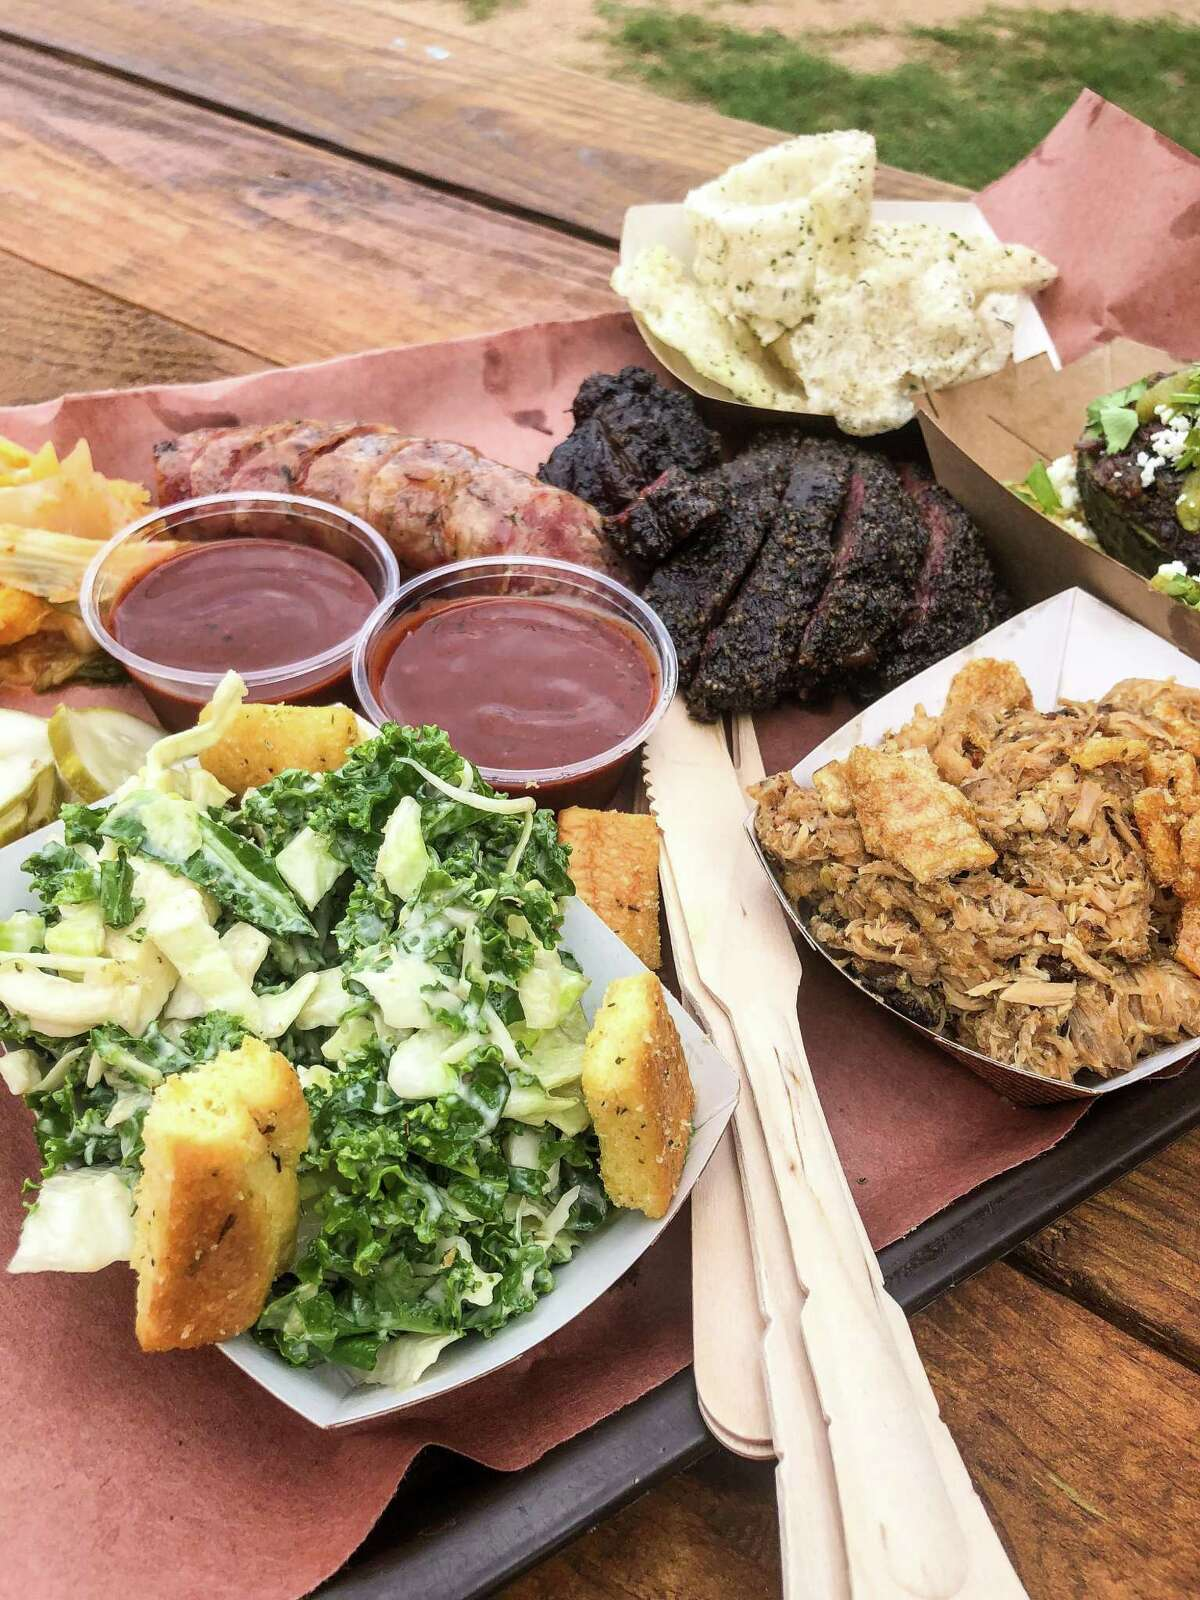 Barbecue tray at LeRoy and Lewis with beef cheeks in the middle.